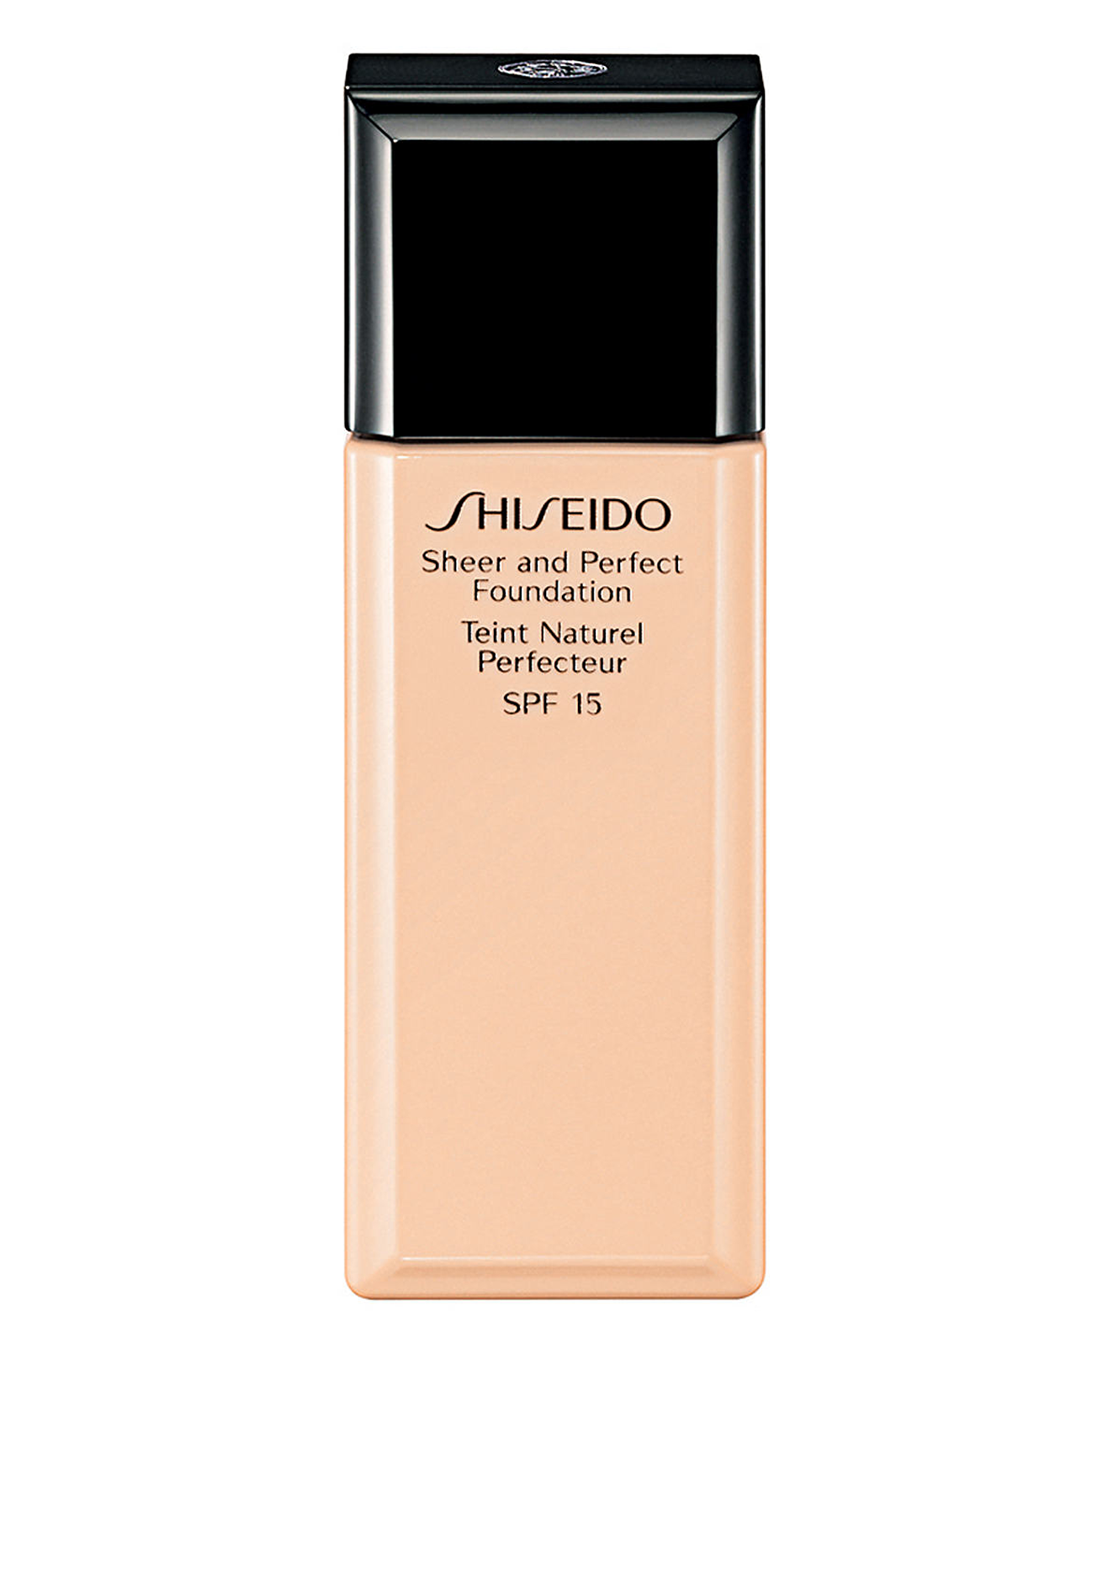 Shiseido Sheer and Perfect Foundation, Deep Ochre O80